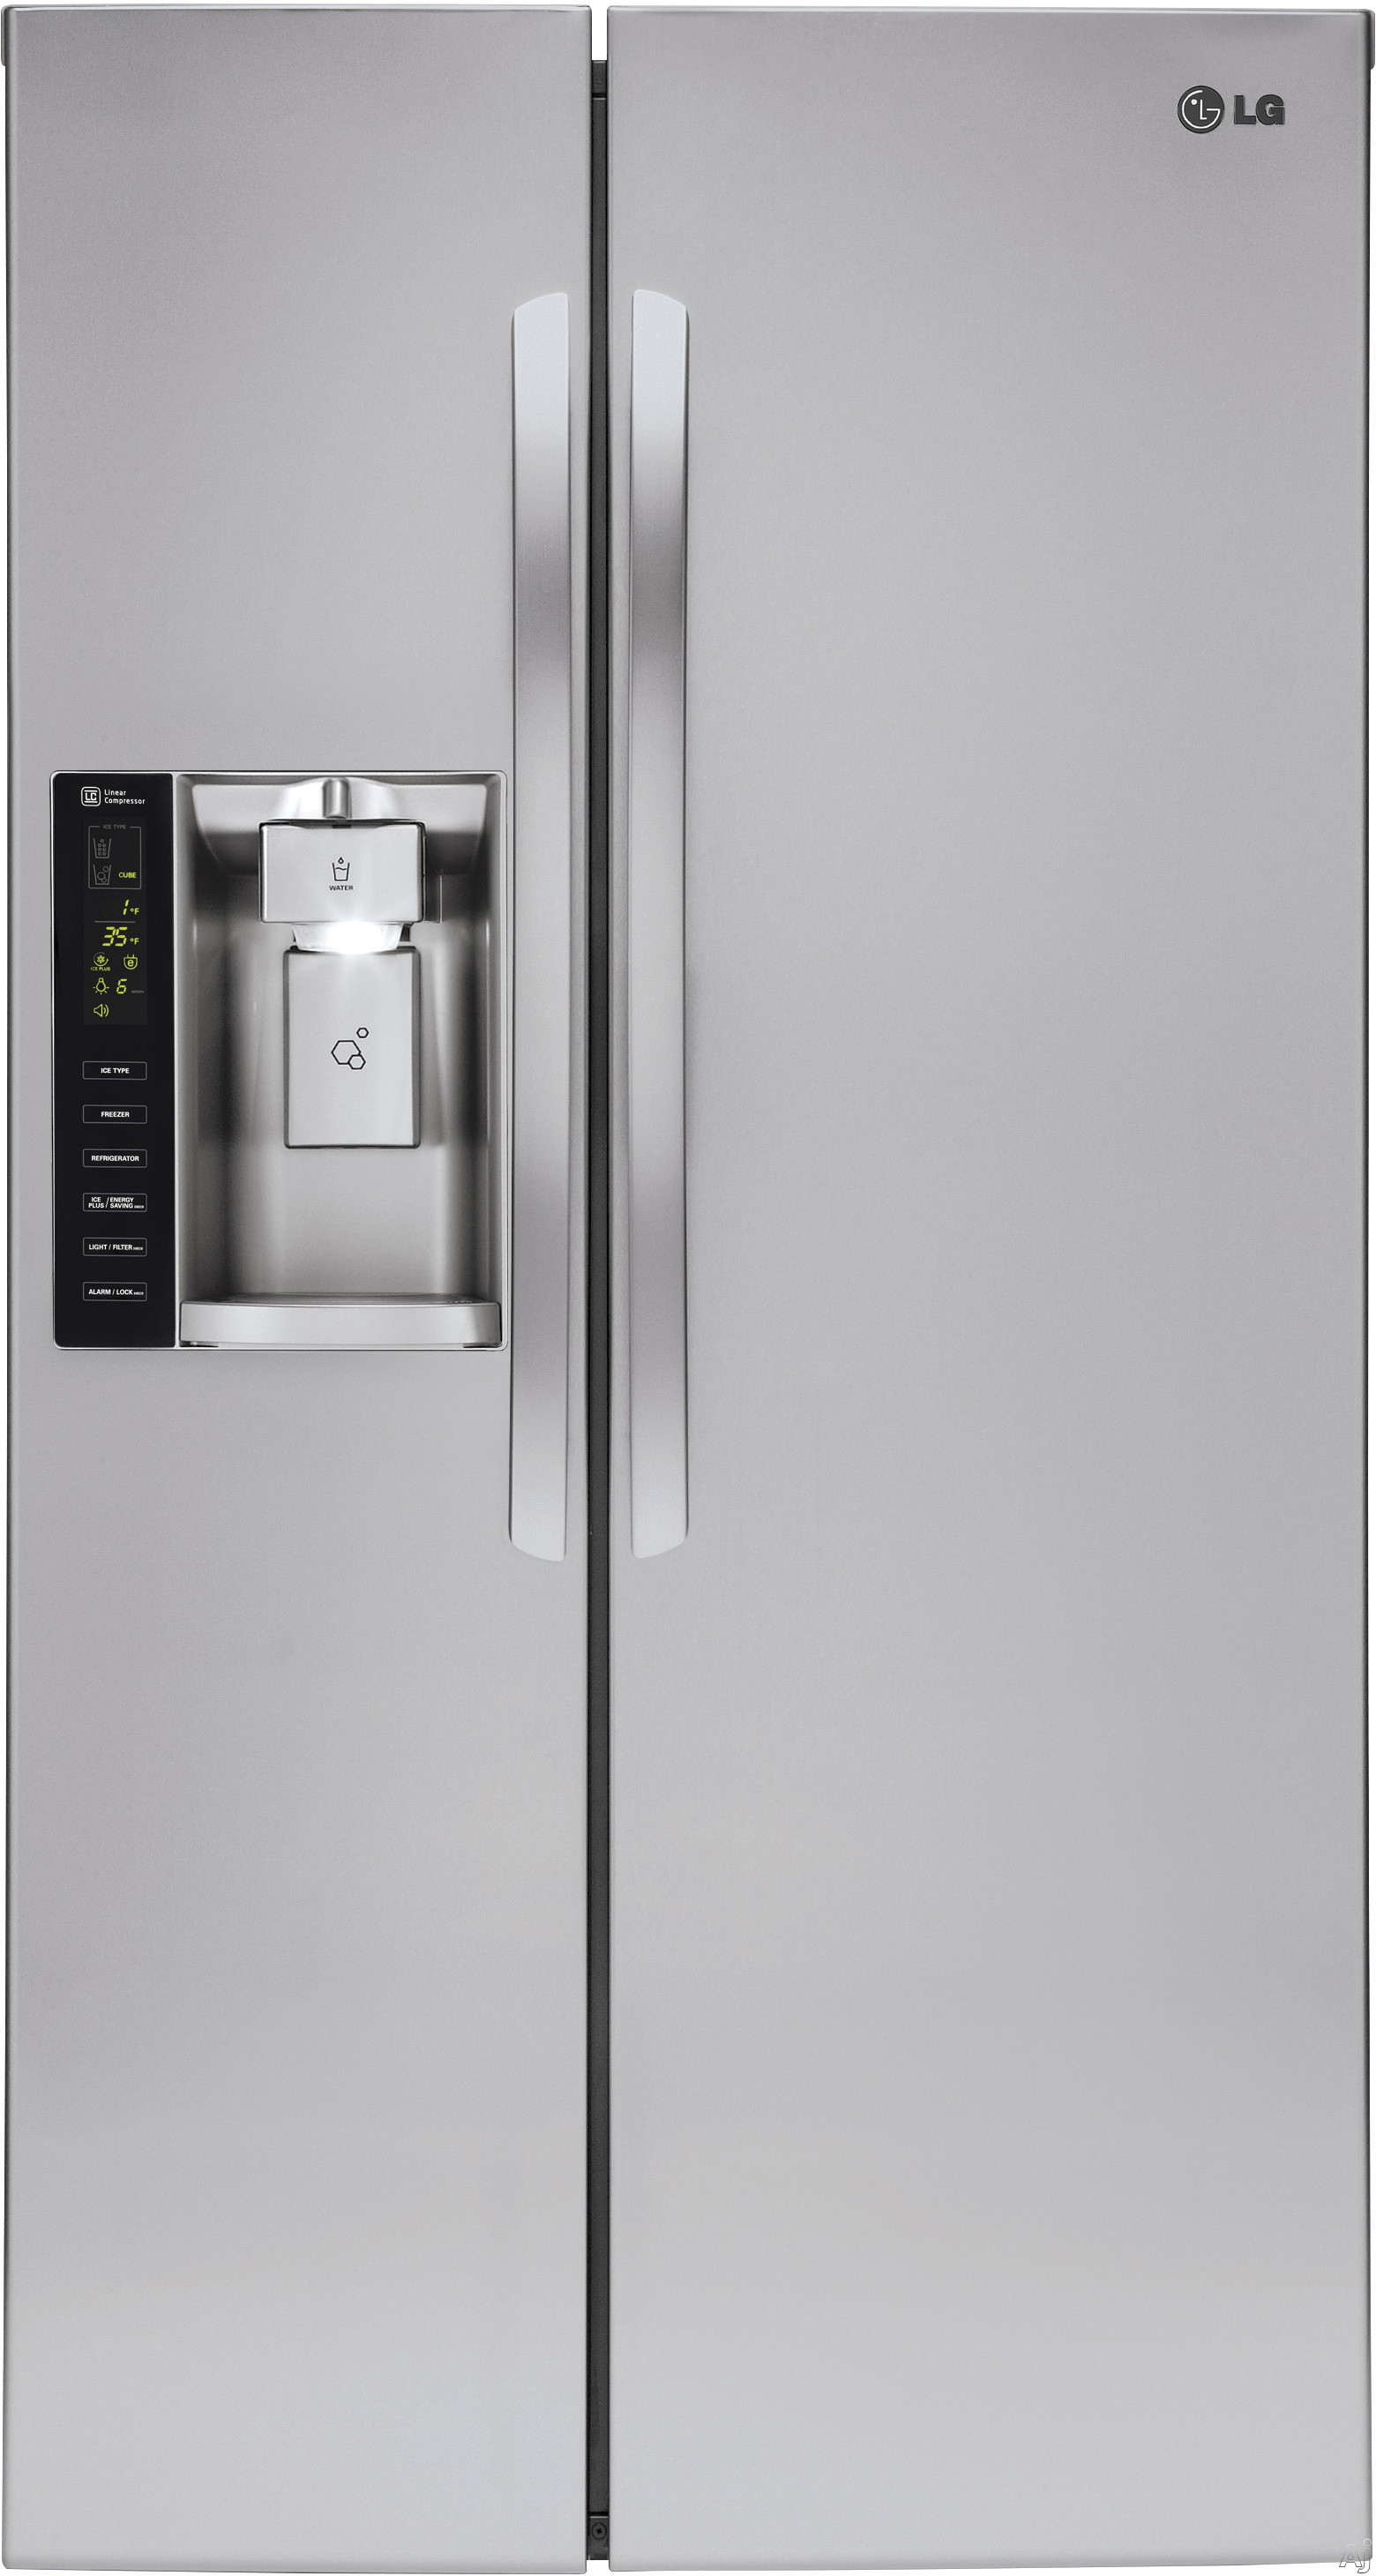 LG - 26.2 Cu. Ft. Side-by-Side Refrigerator with Thru-the-Door Ice and Water - Stainless Steel LSXS26326S